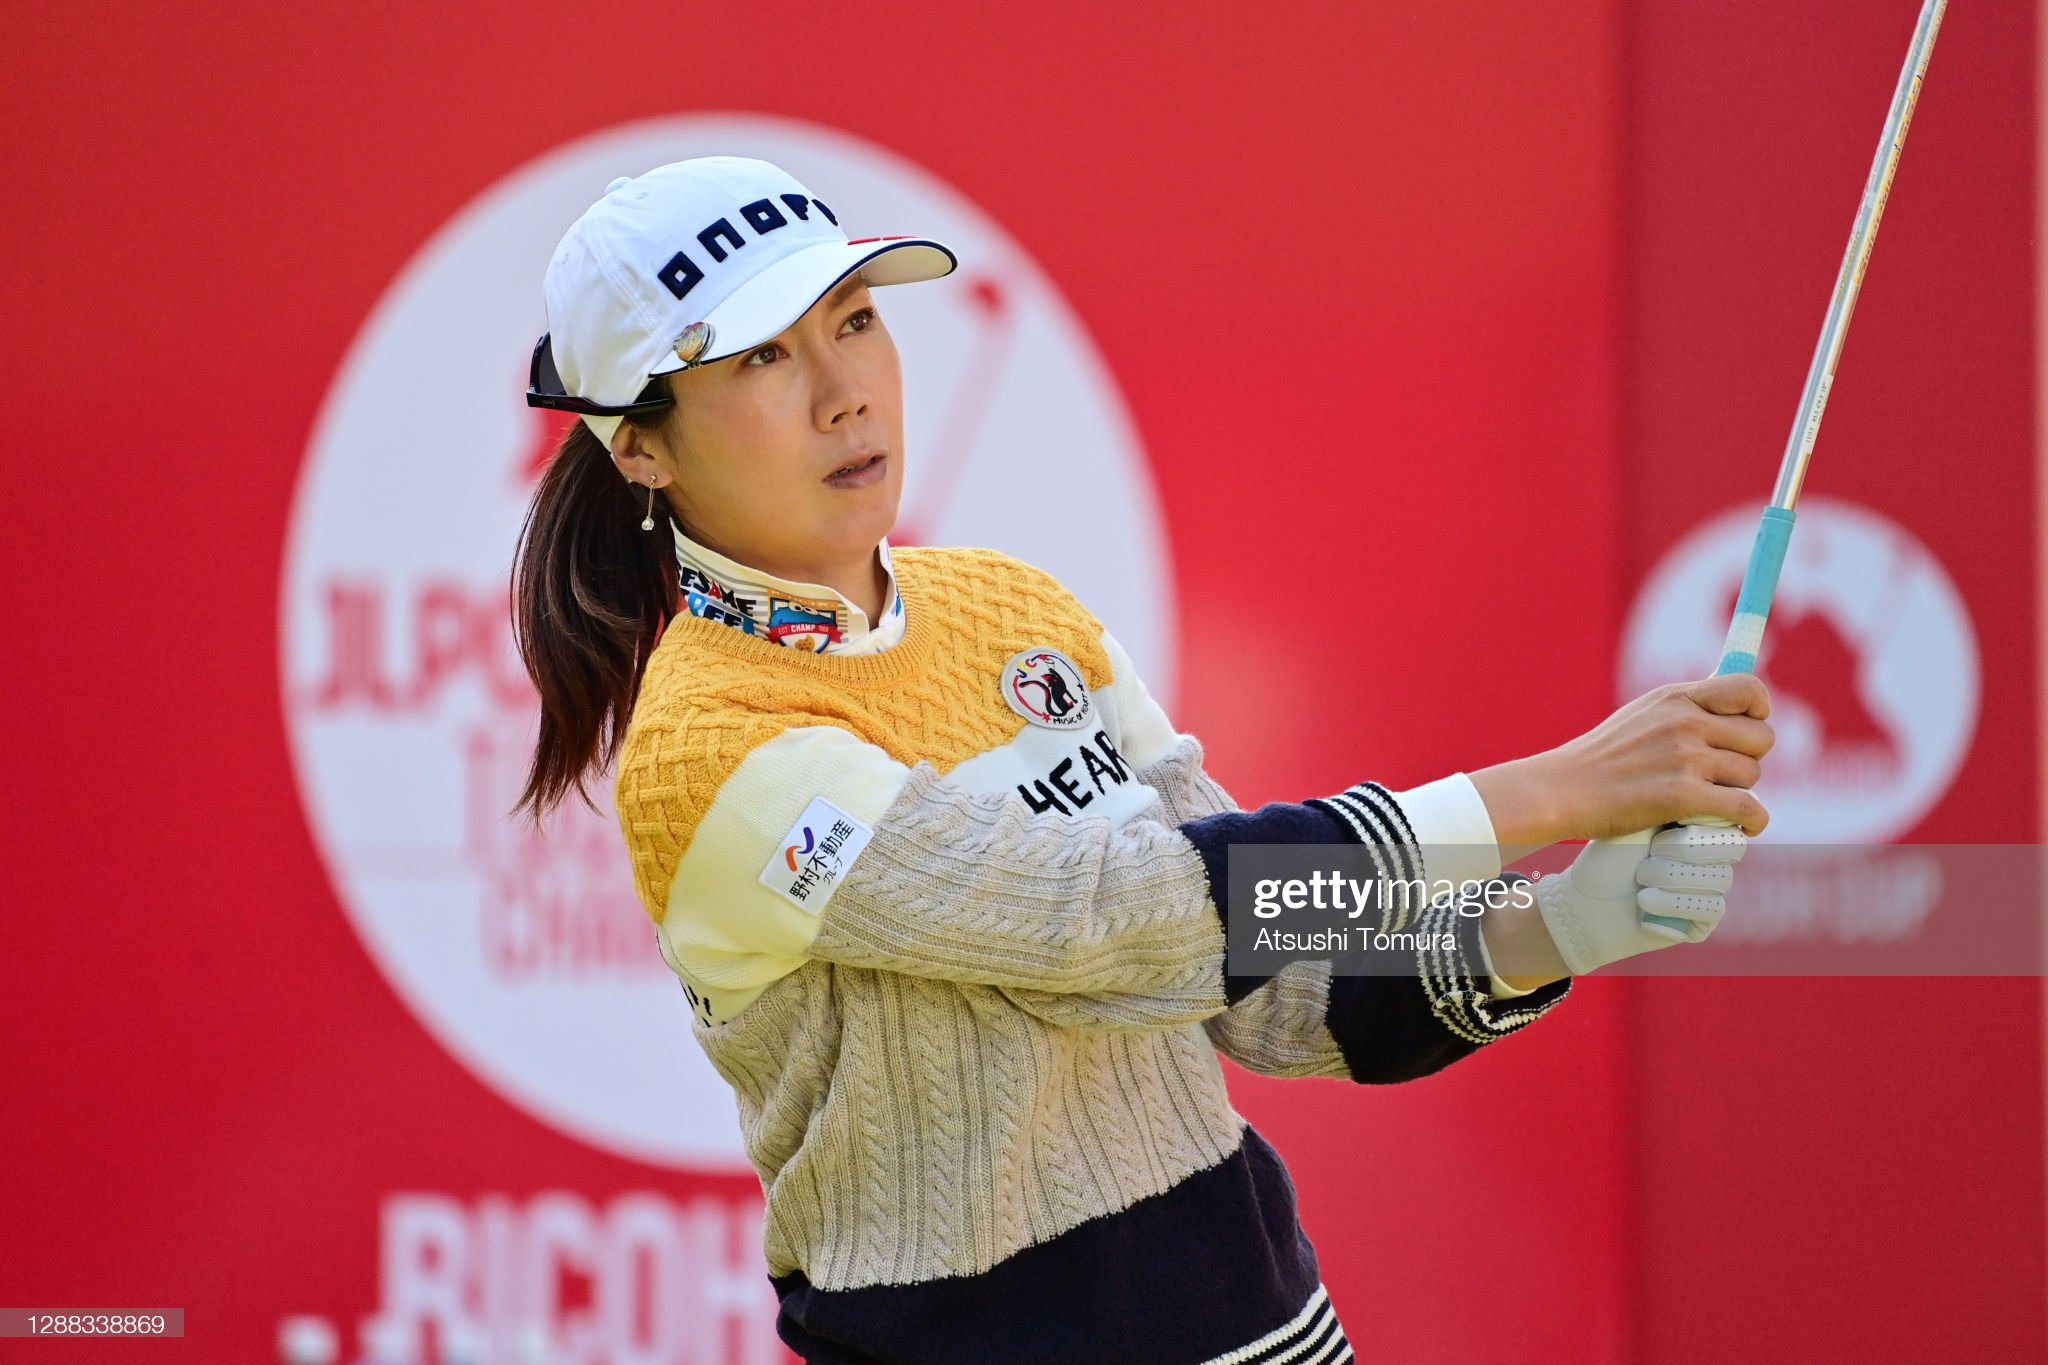 https://media.gettyimages.com/photos/jihee-lee-of-south-korea-hits-her-tee-shot-on-the-1st-hole-during-the-picture-id1288338869?s=2048x2048